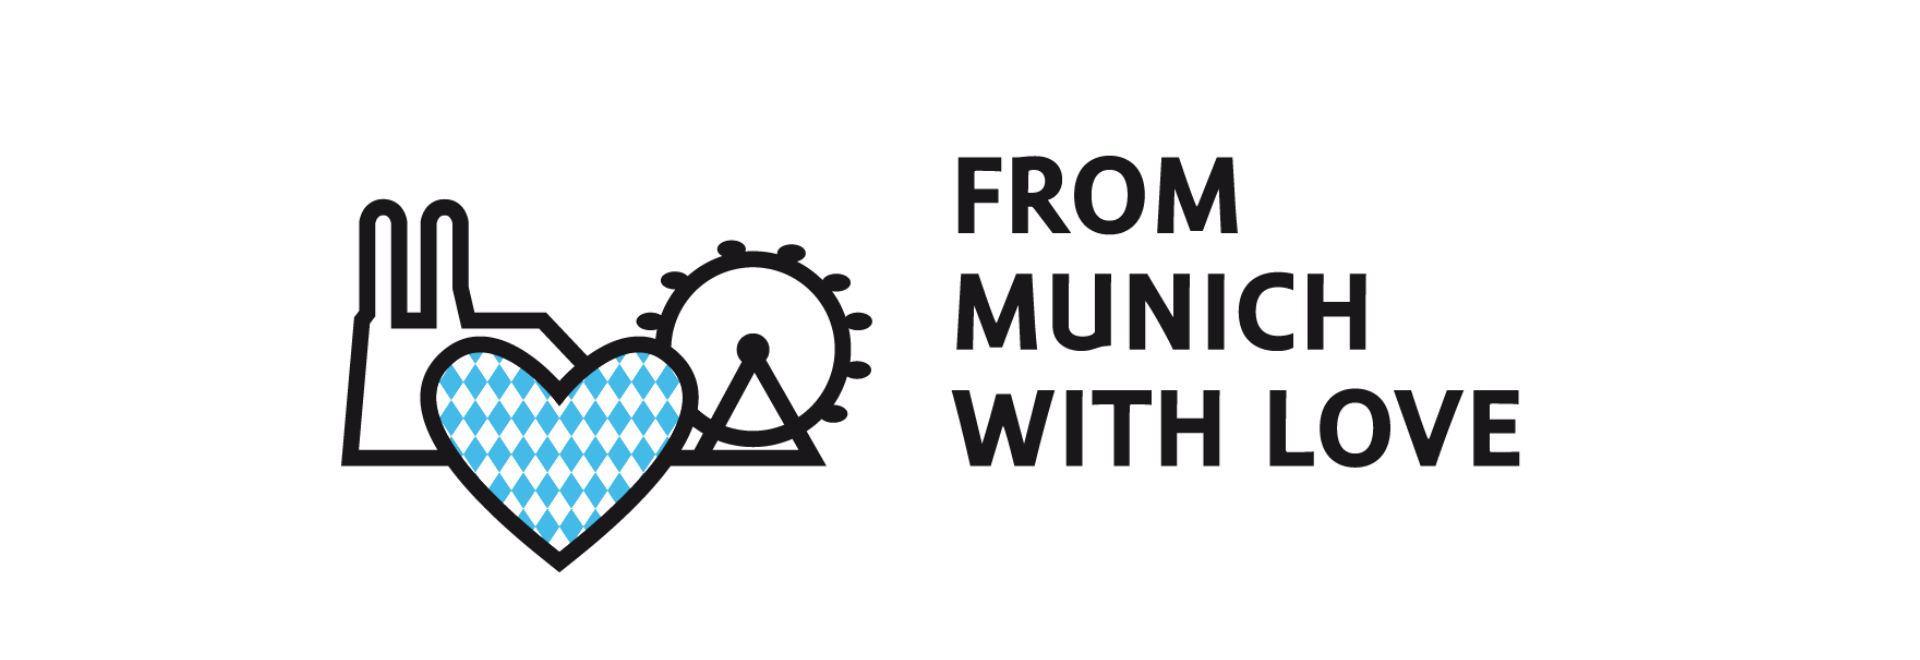 From Munich with Love Retina Logo